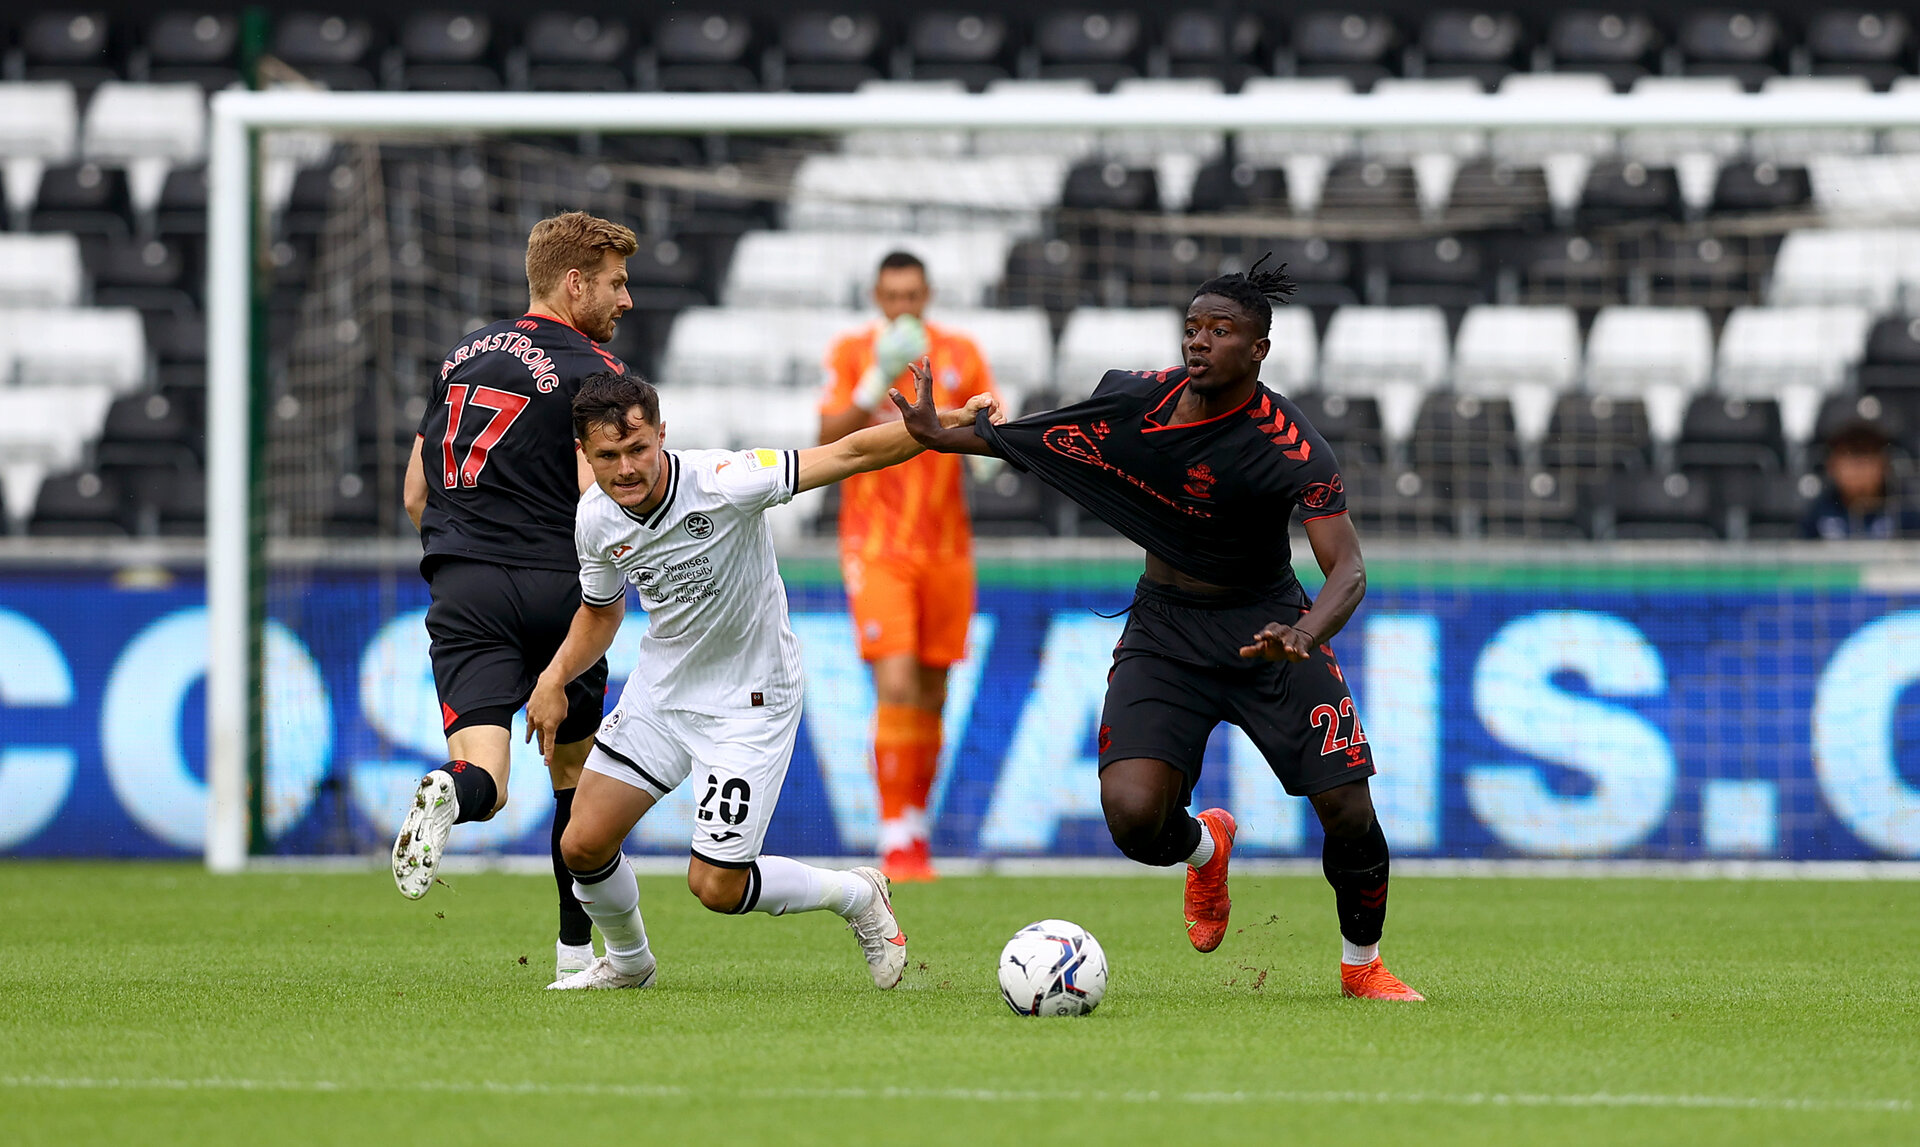 SWANSEA, WALES - JULY 31: Mohammed Salisu(R) of Southampton during the pre-season friendly match between Swansea City and Southampton FC, at The Liberty Stadium on July 31, 2021 in Swansea, Wales. (Photo by Matt Watson/Southampton FC via Getty Images)